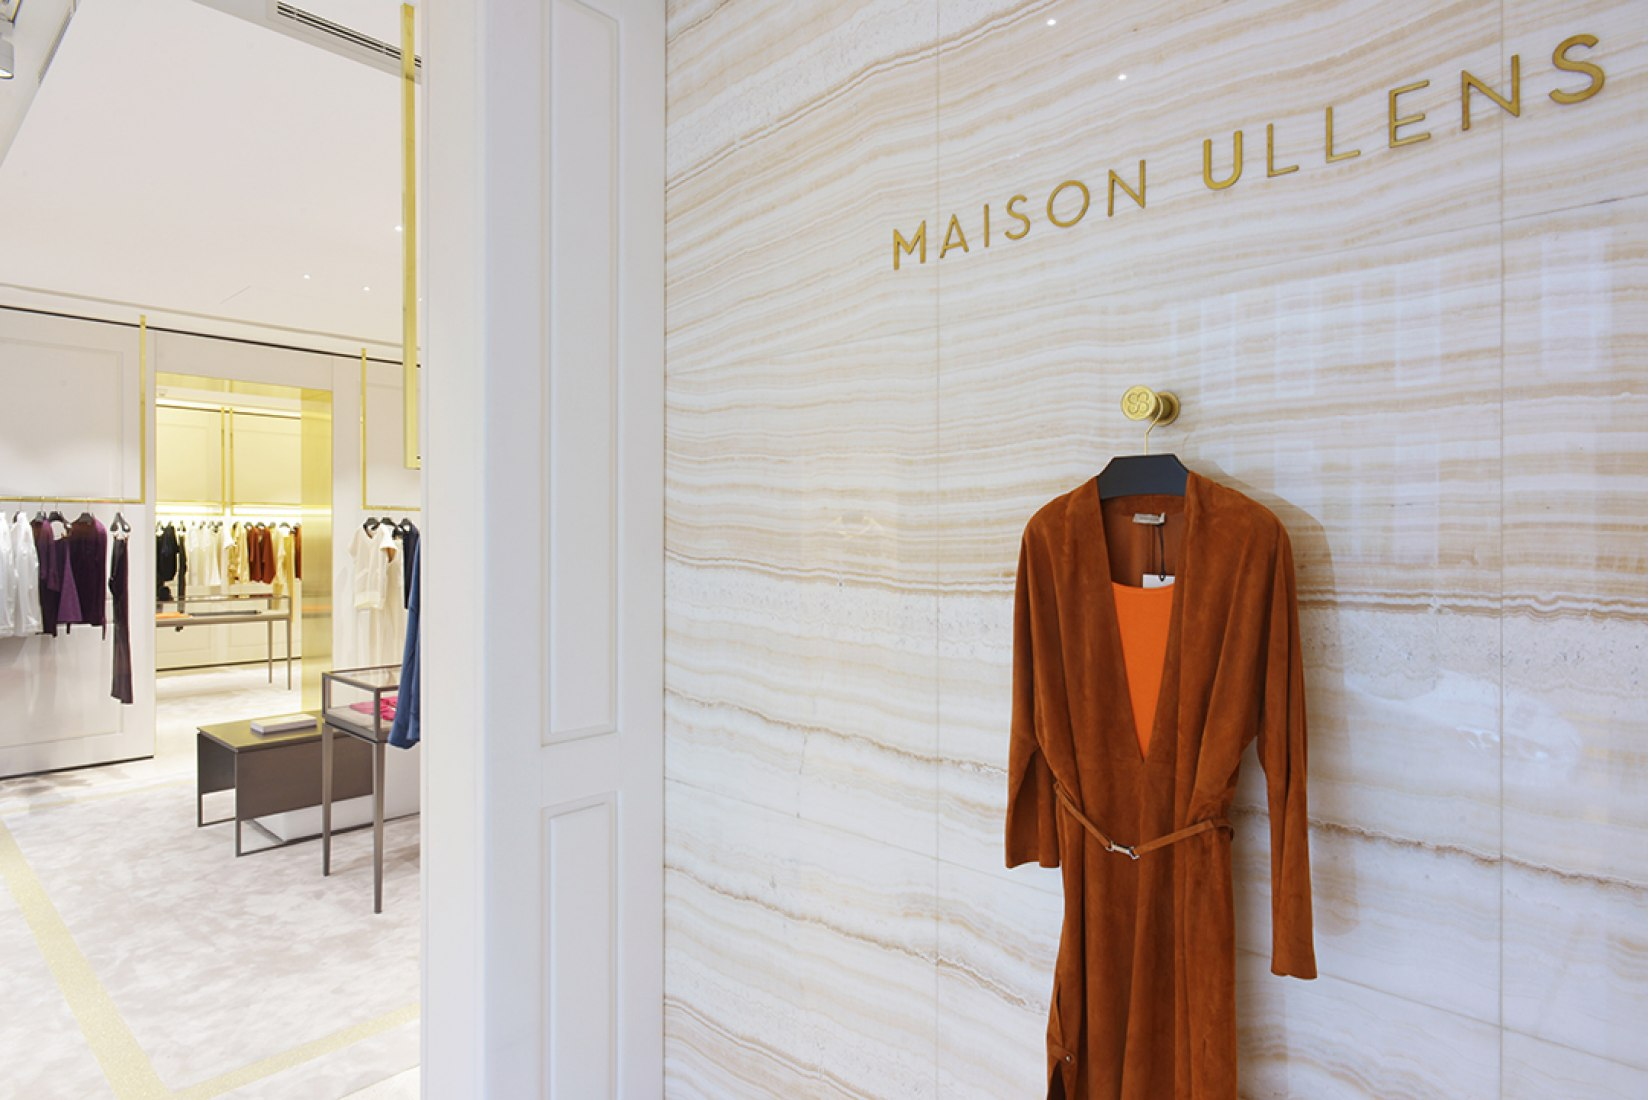 Maison Ullens' Flagship Store by OMA. Photography © Kevin Mak. Courtesiy of OMA © All rights reserved